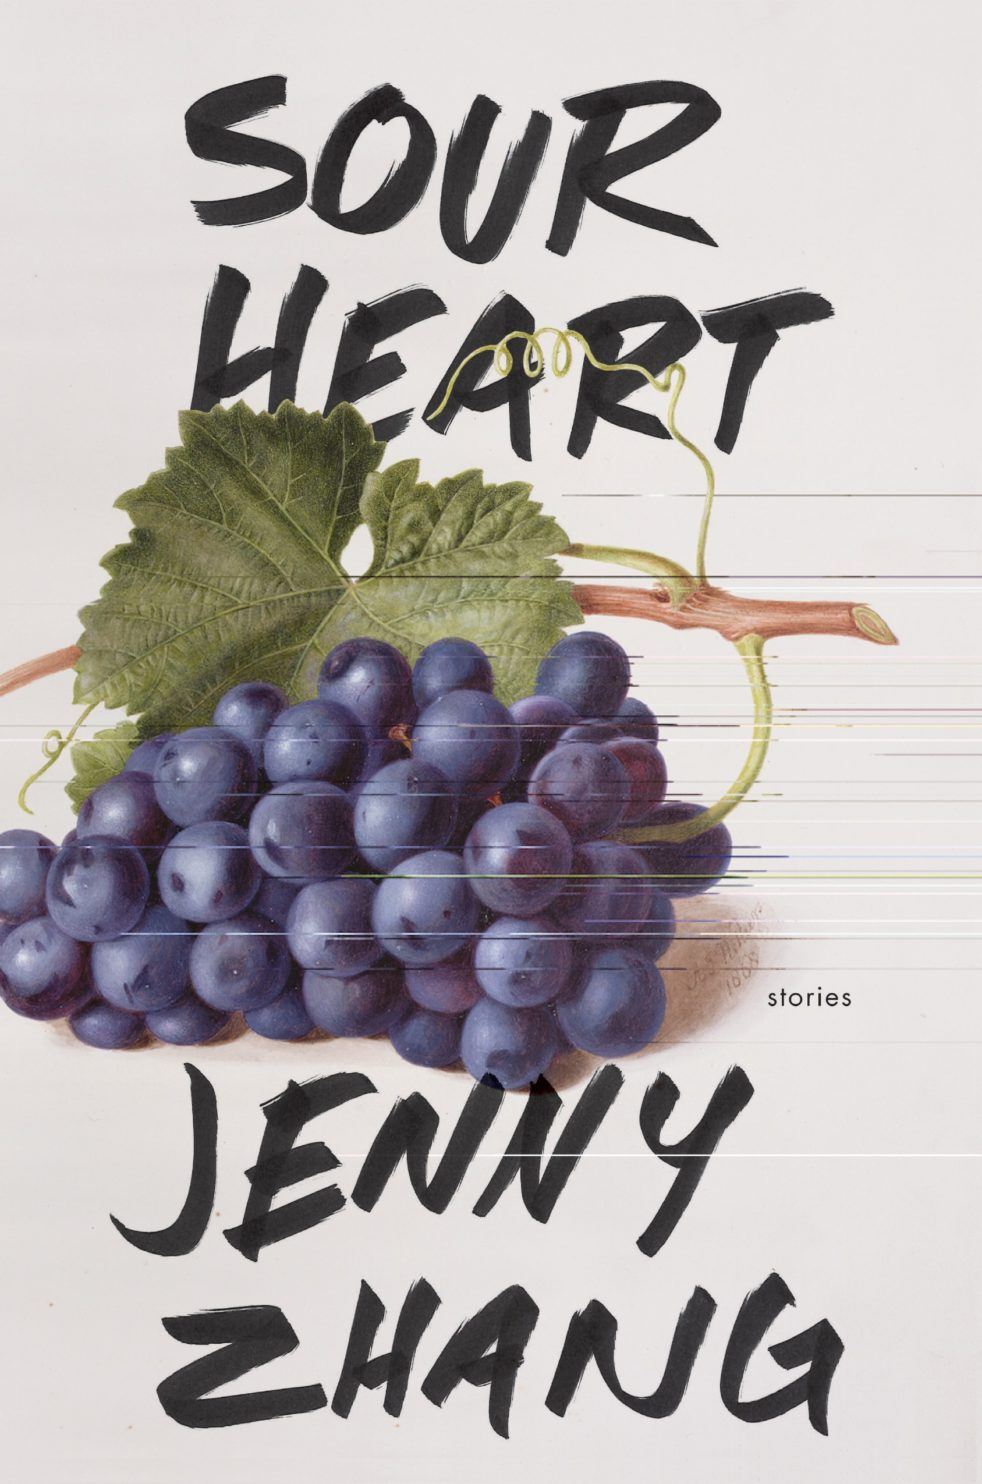 The cover of Jenny Zhang's book Sour Heart.